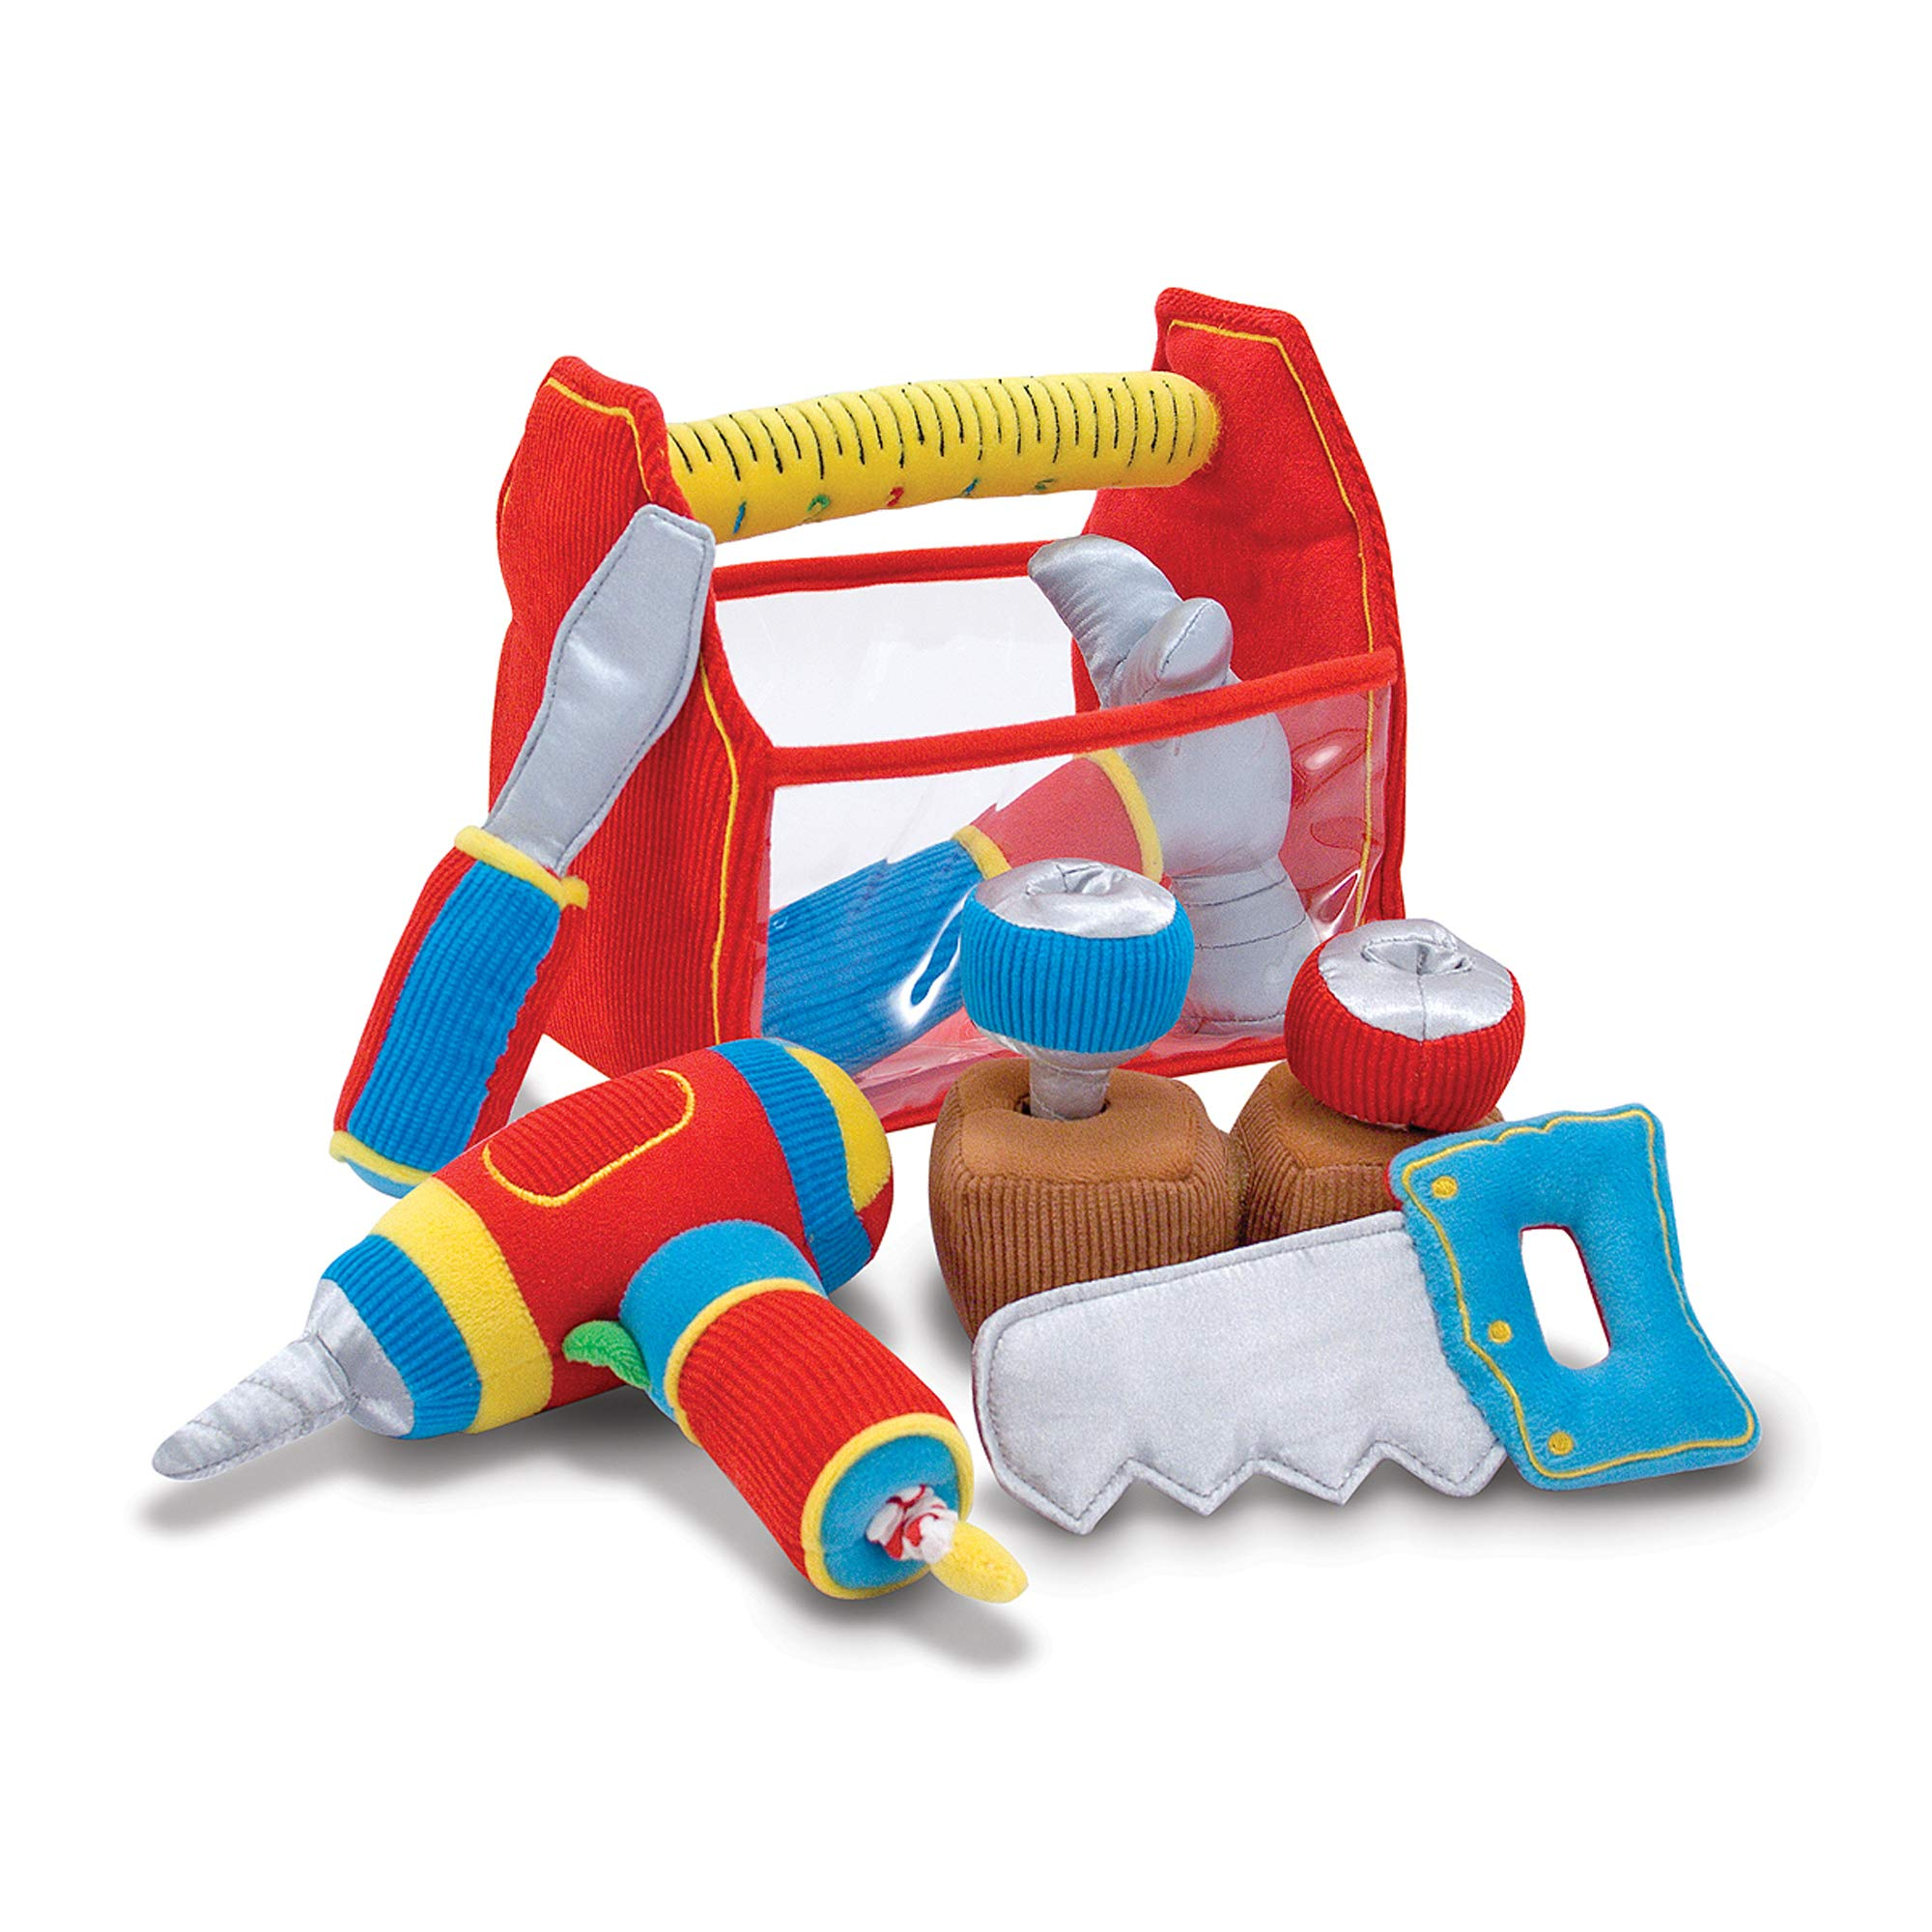 Melissa & Doug Toolbox Fill and Spill Toddler Toy With Vibrating Drill  (9 pcs) by Melissa & Doug